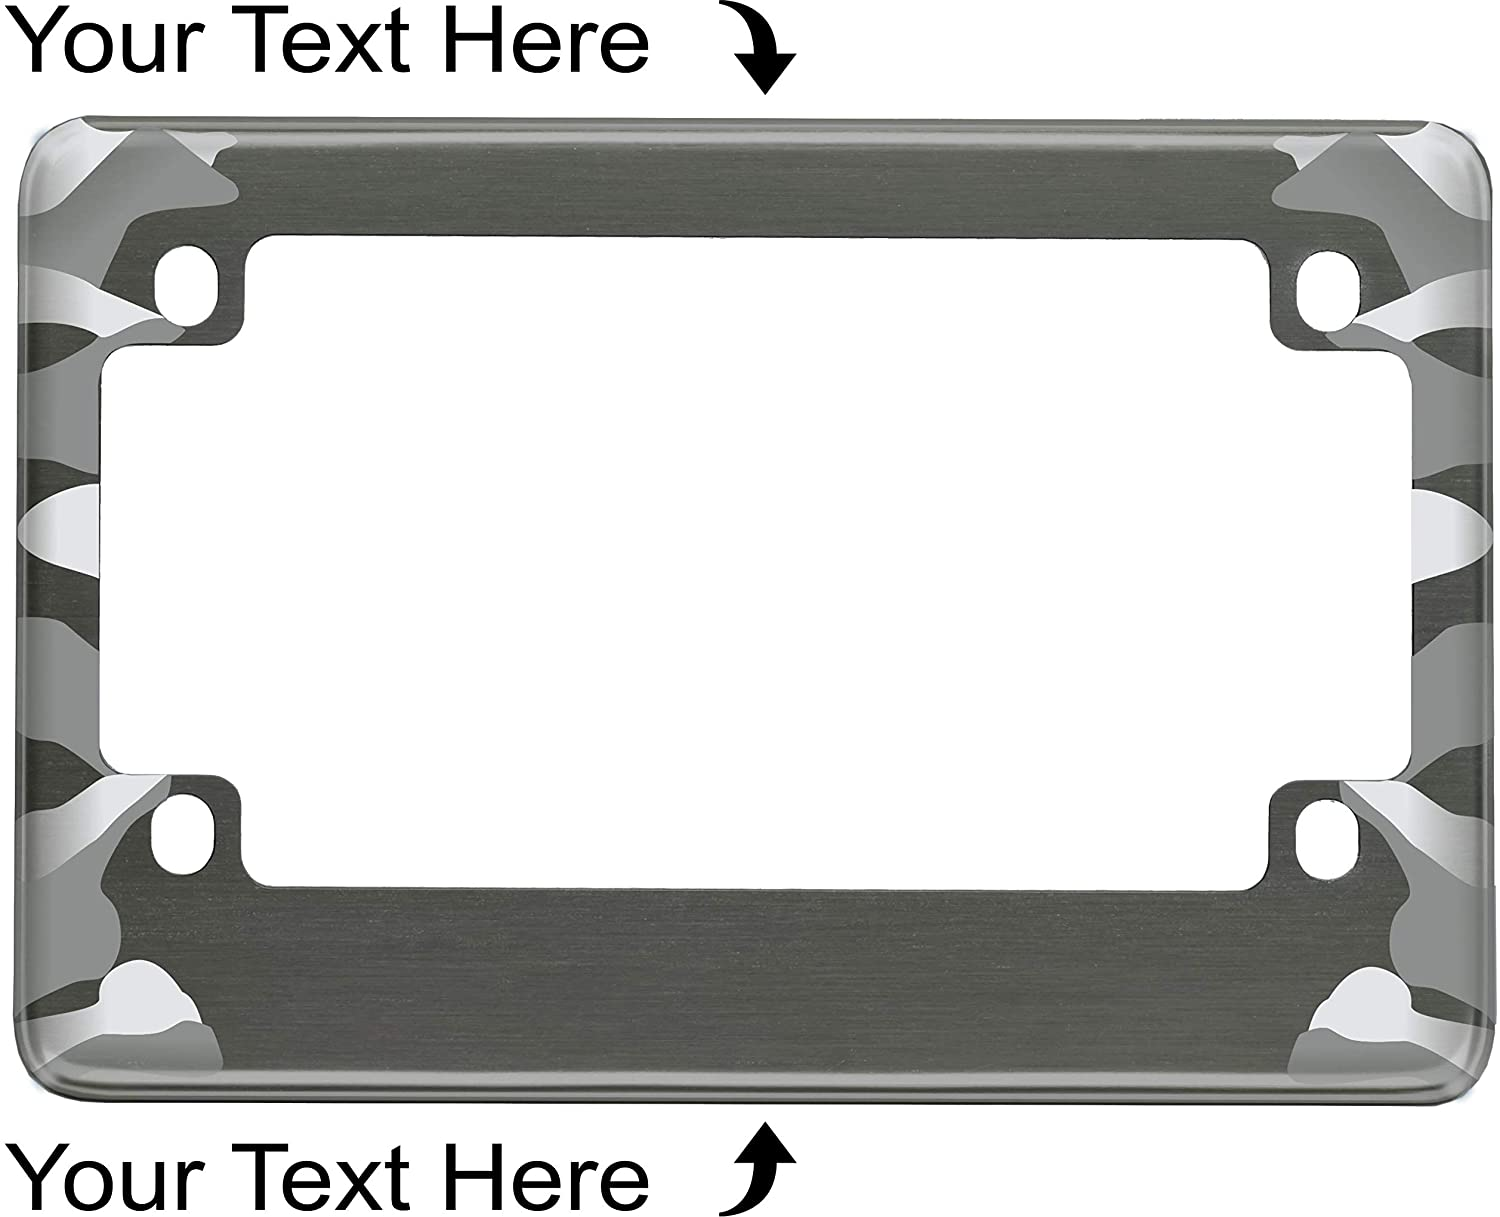 Motorcycle Personalized Camouflage Design Anodized Aluminum Custom License Plate Frame (Gray)